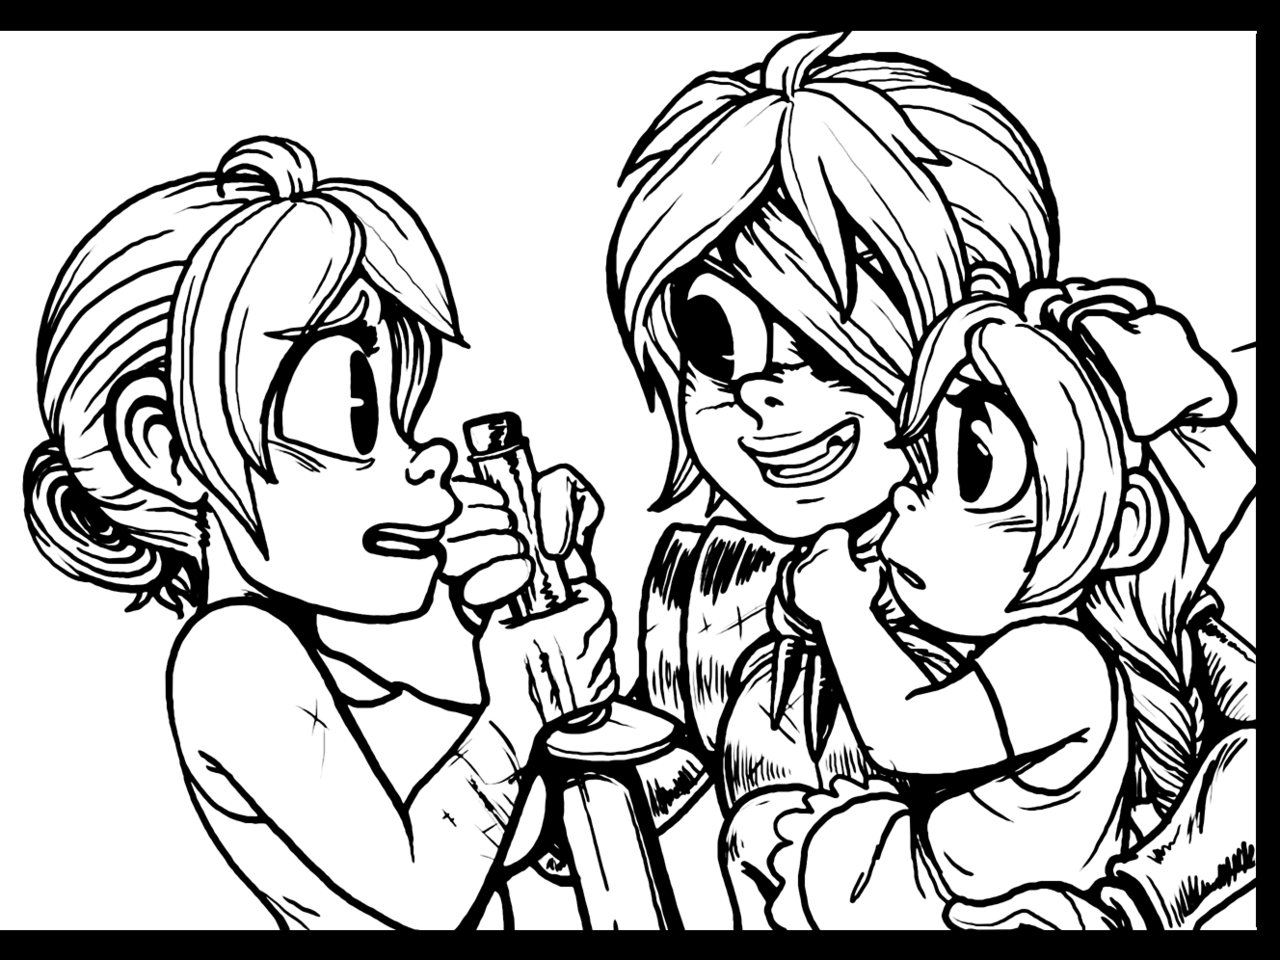 I was really fond of this panel from my Dead Winter guest comic when I inked it (in Photoshop this time), and was sad that it didn't look the same when resized. But hey! That's what Tumblr is for! Click to view it full size.